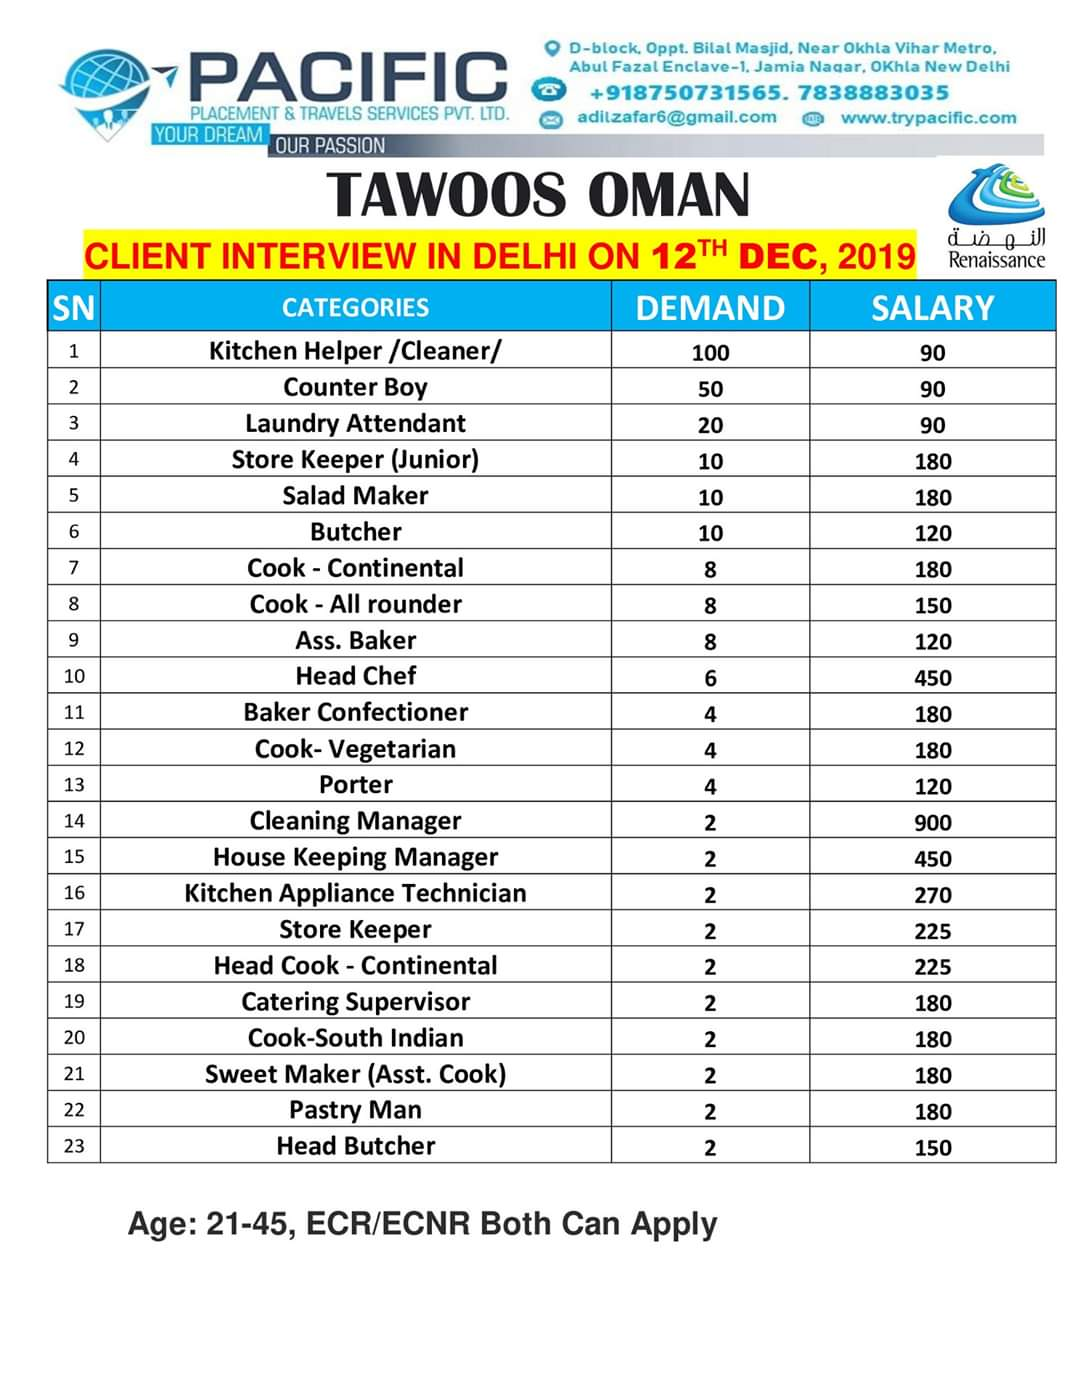 TAWOOS OMAN JOB INTERVIEW IN DELHI